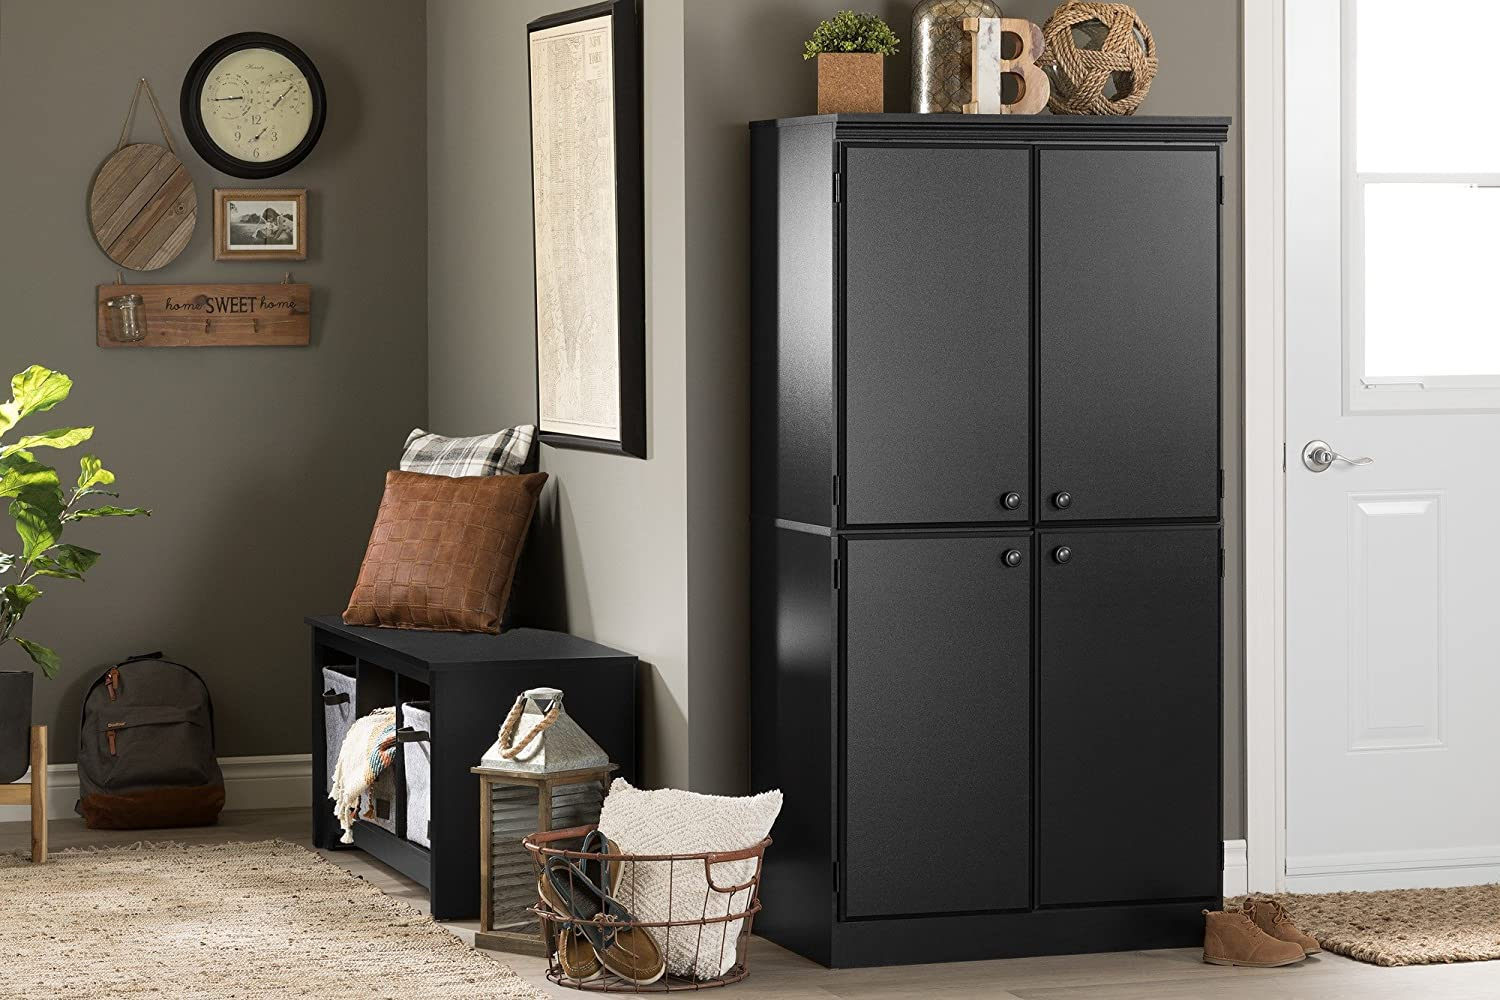 South Shore Tall 4-Door Storage Cabinet with Adjustable Shelves Country Pine